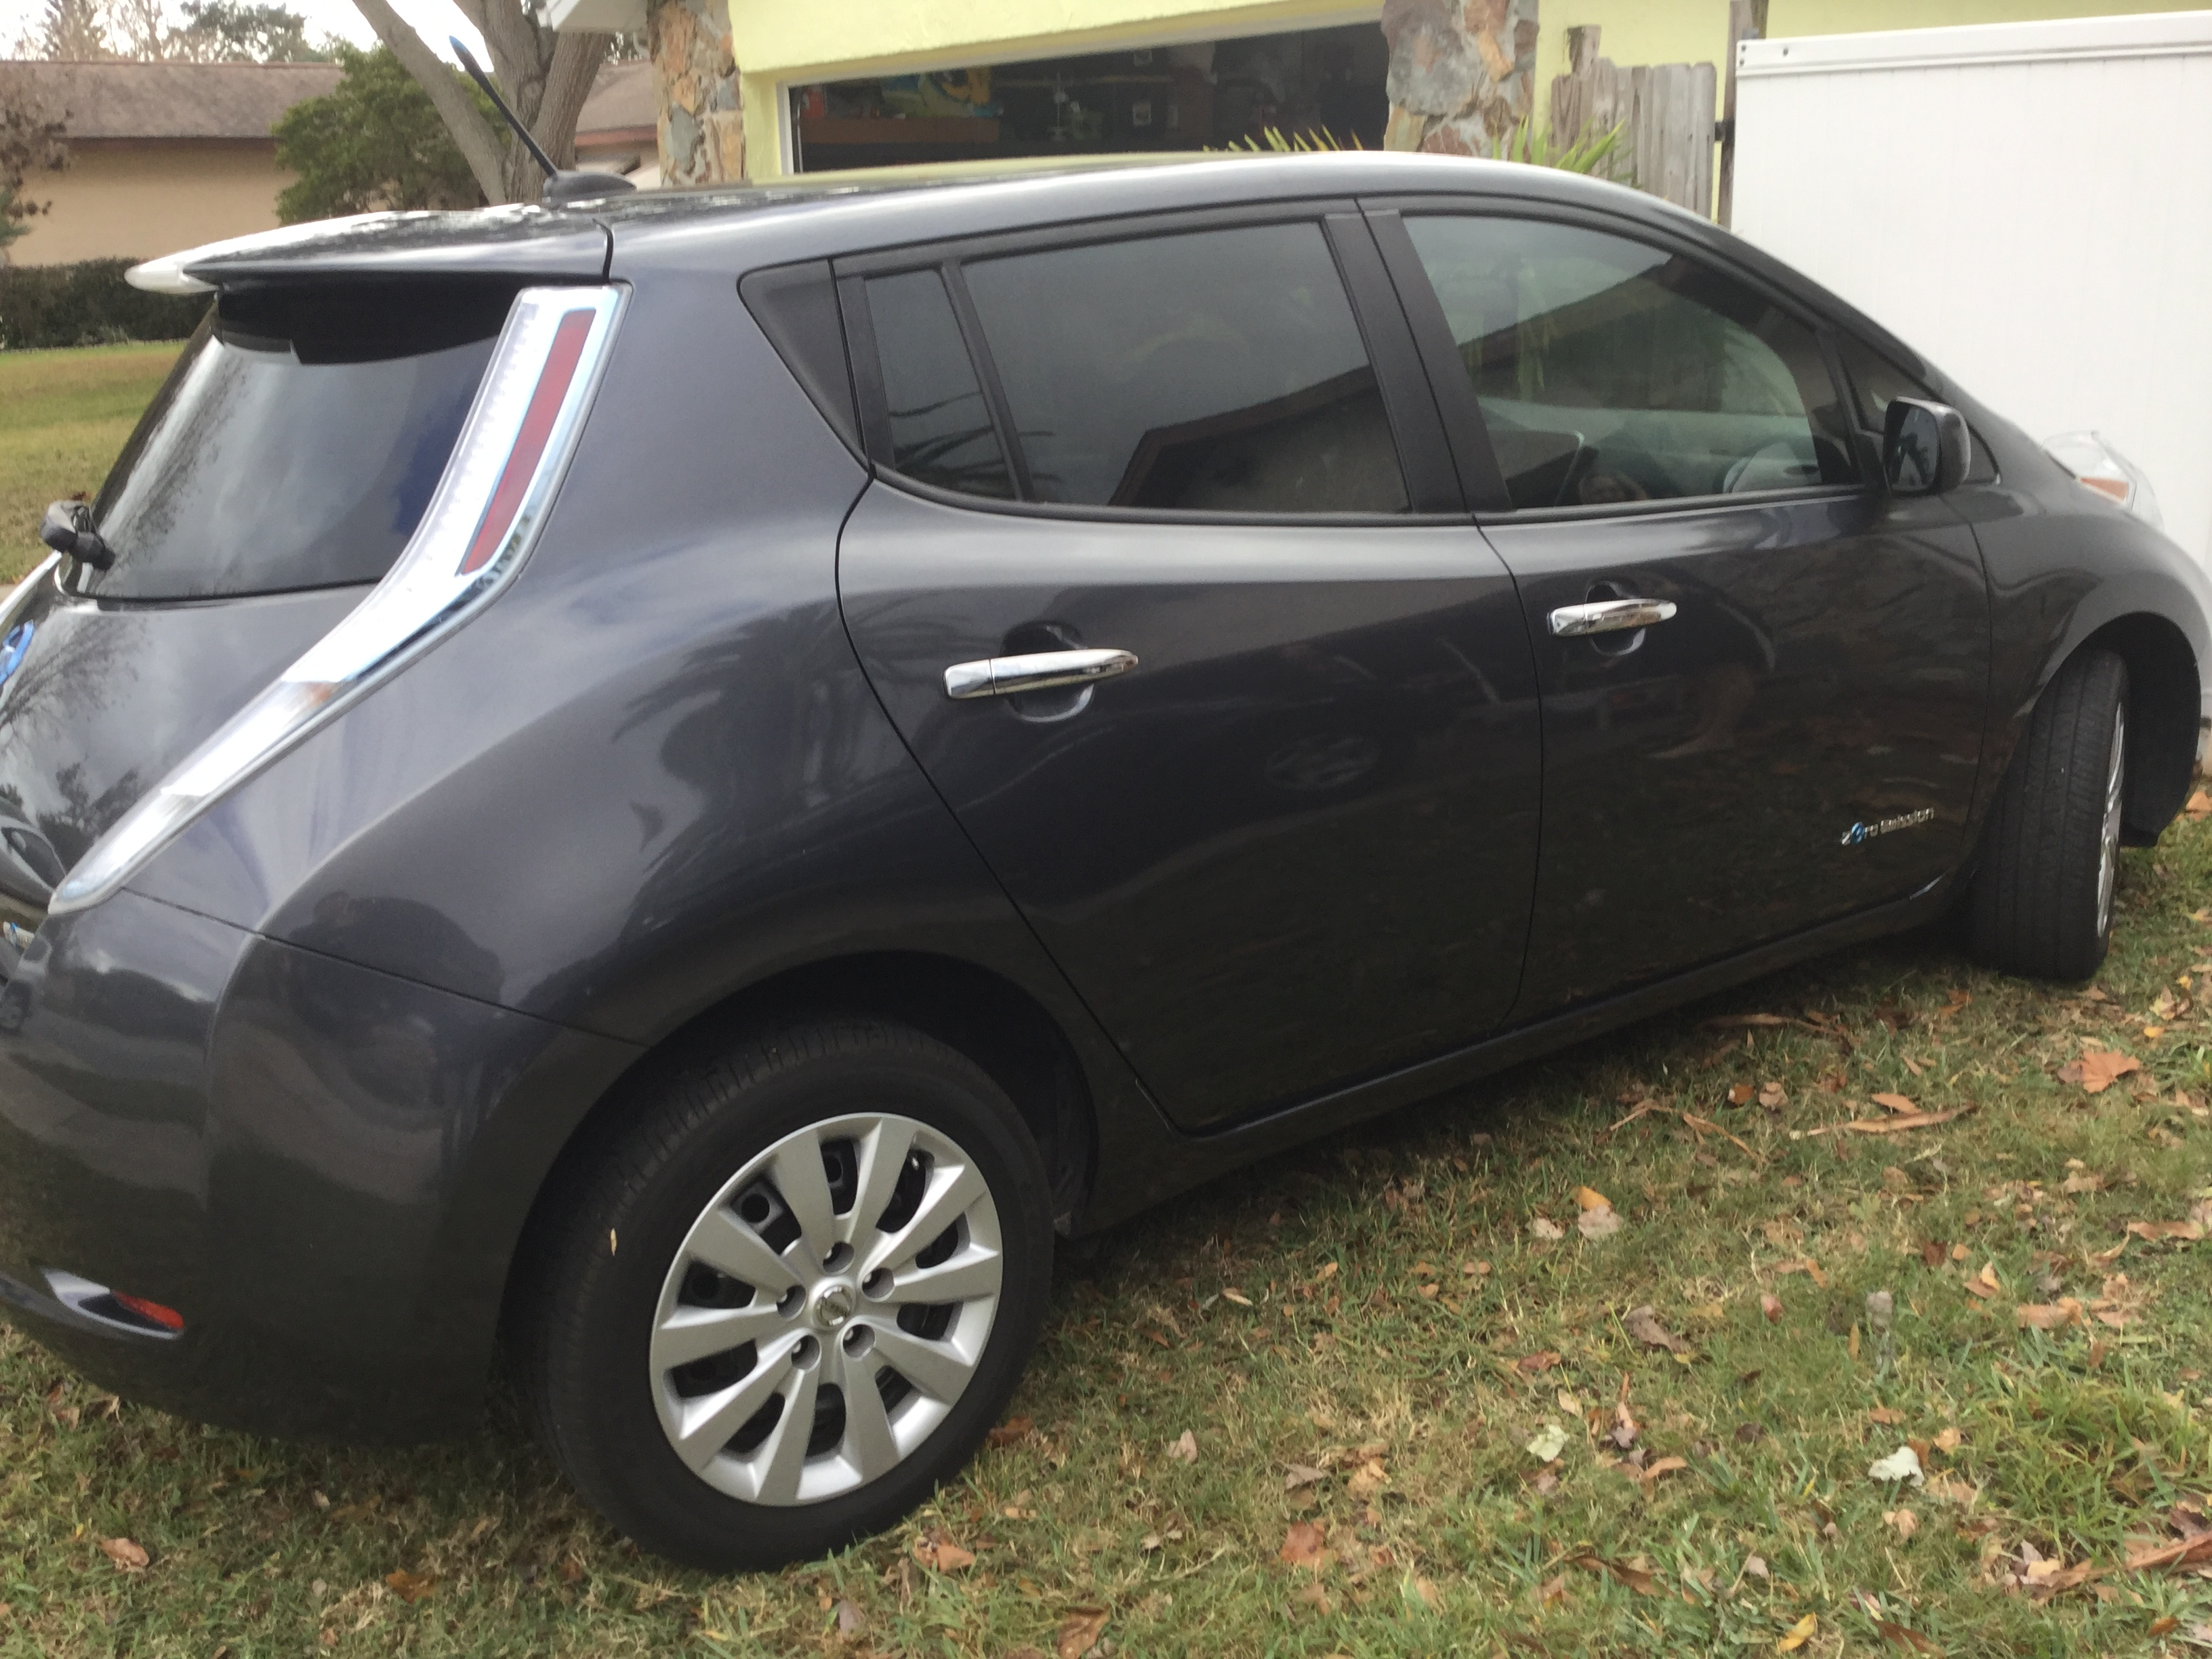 Window tinting, like electric cars, can save energy, which means saving money!